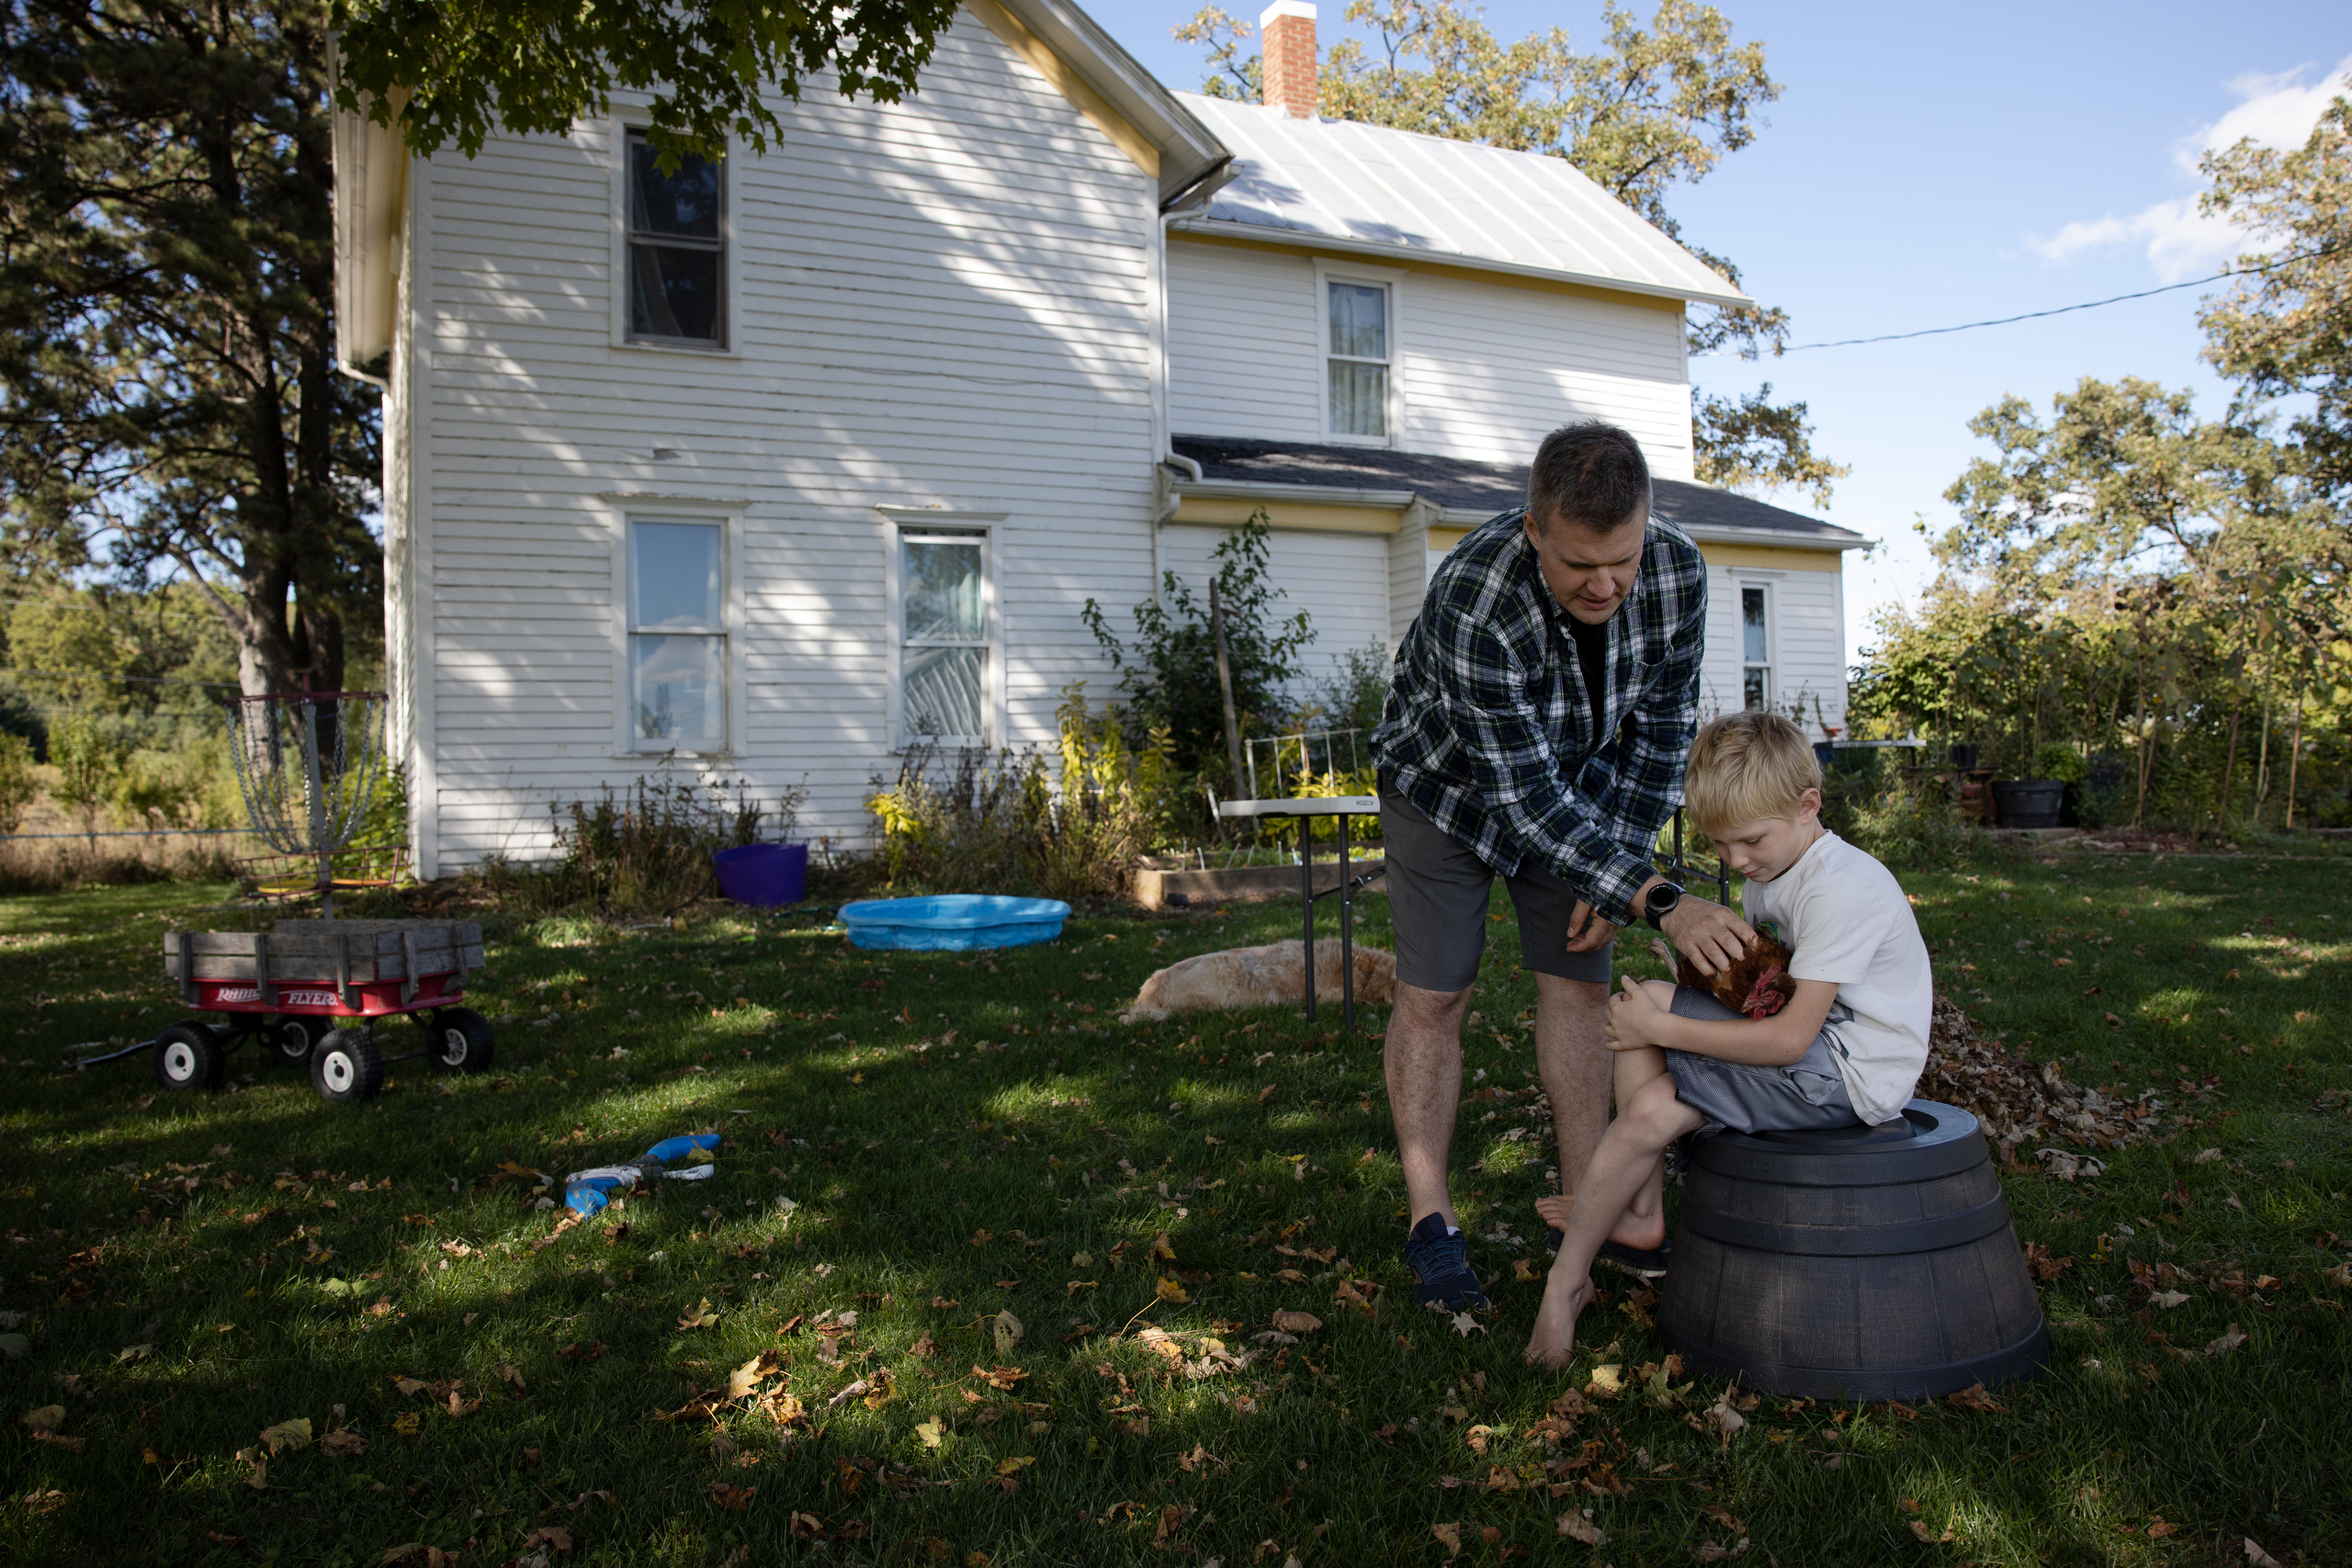 Matt Millar is seen with his son Sterling, 7, outside his house in Blue Mounds, Wis., on Sept. 18, 2020. To give his children a break from online schooling, Millar says he organized games in the yard including catching chickens.